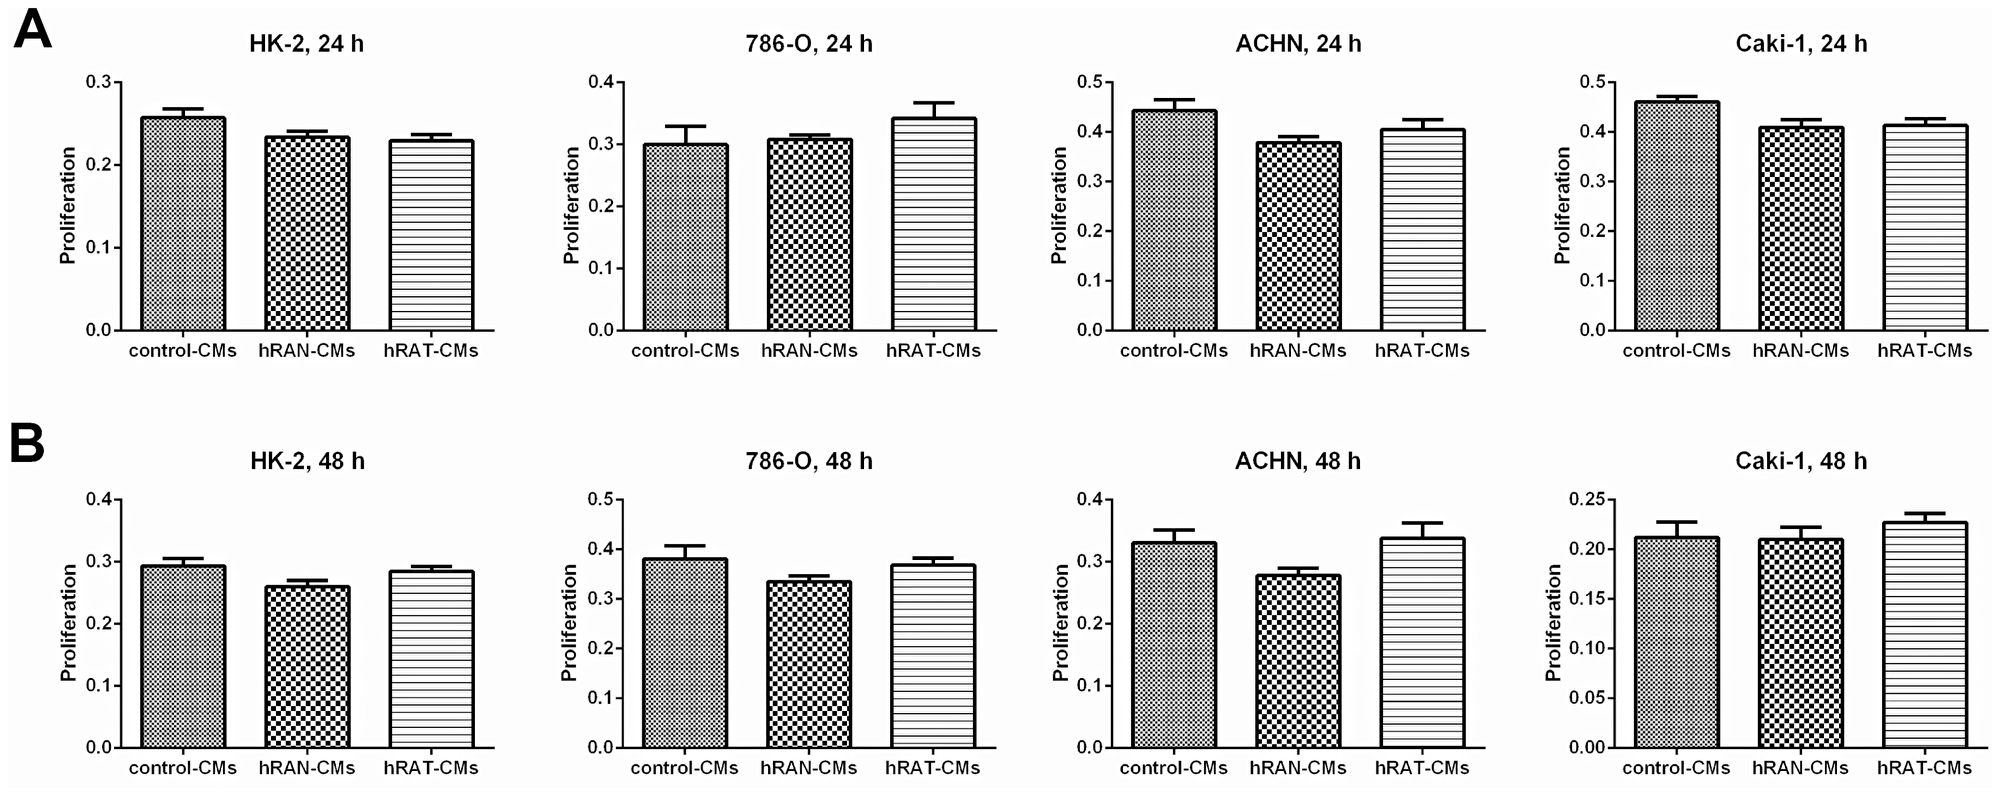 Effect of CMs from hRAN and hRAT on proliferation of HK-2, 786-O, ACHN and Caki-1 cell lines.